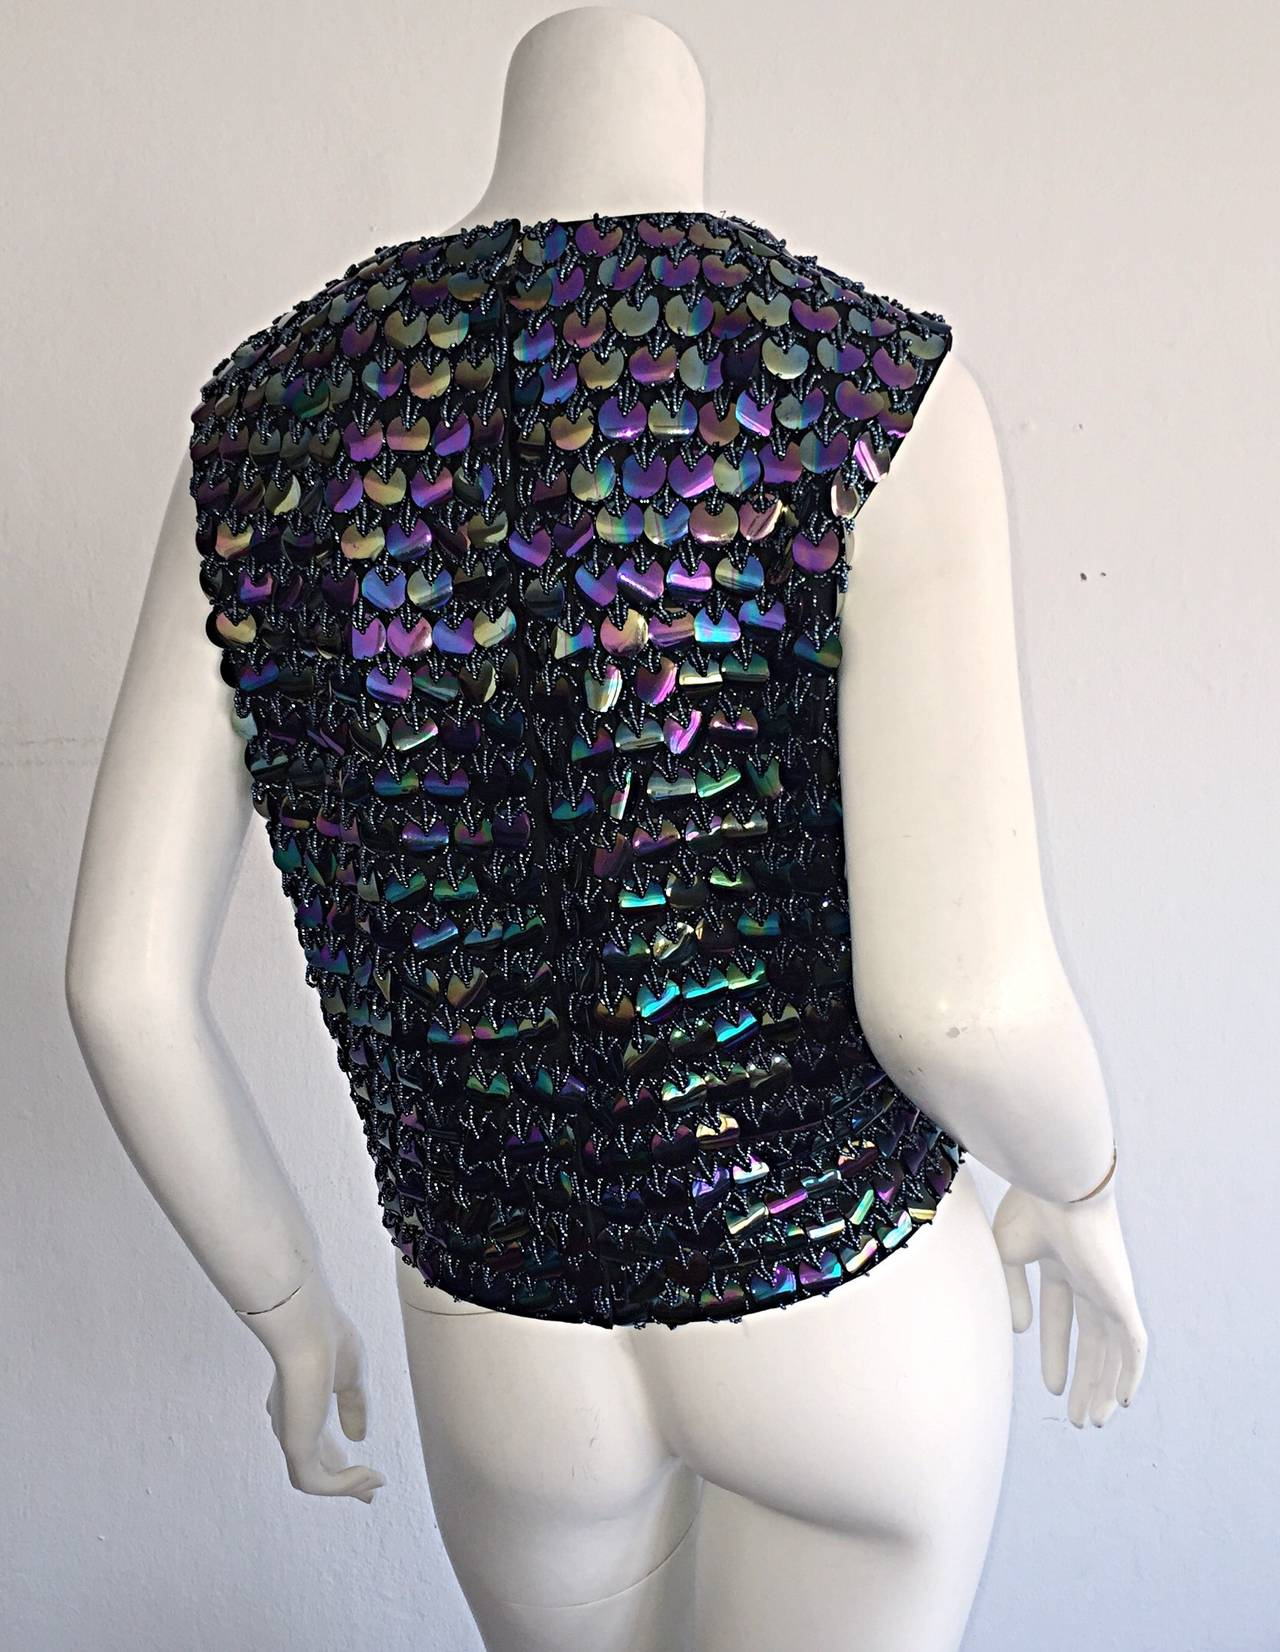 Women's Fabulous 1950s Gene Shelly's Fully Beaded Iridescent Paillettes Silk Blouse Top For Sale